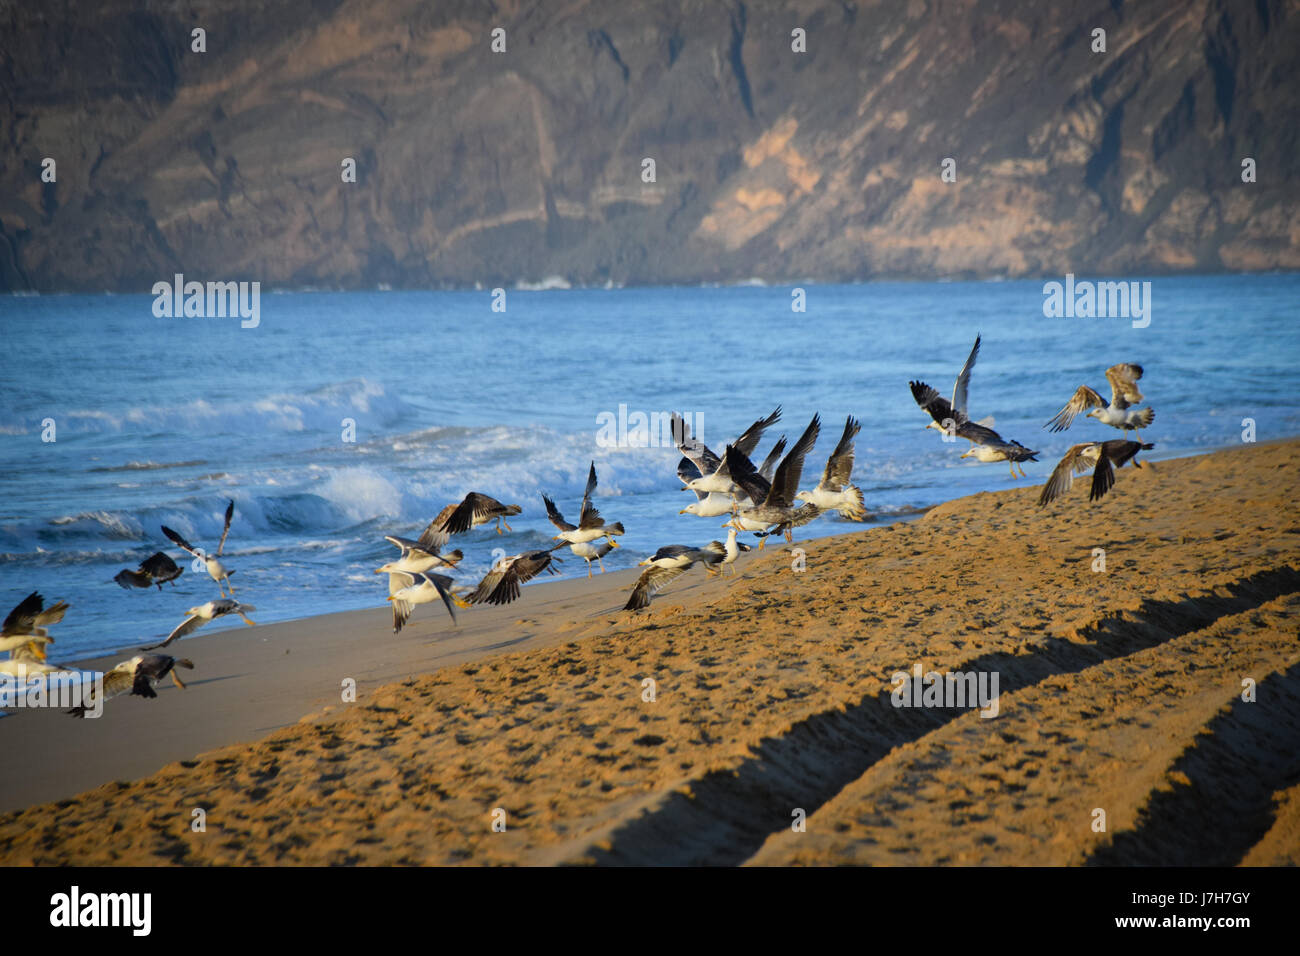 Seagulls flying off the beach at Porto Santo Island, Portugal at early morning - Stock Image